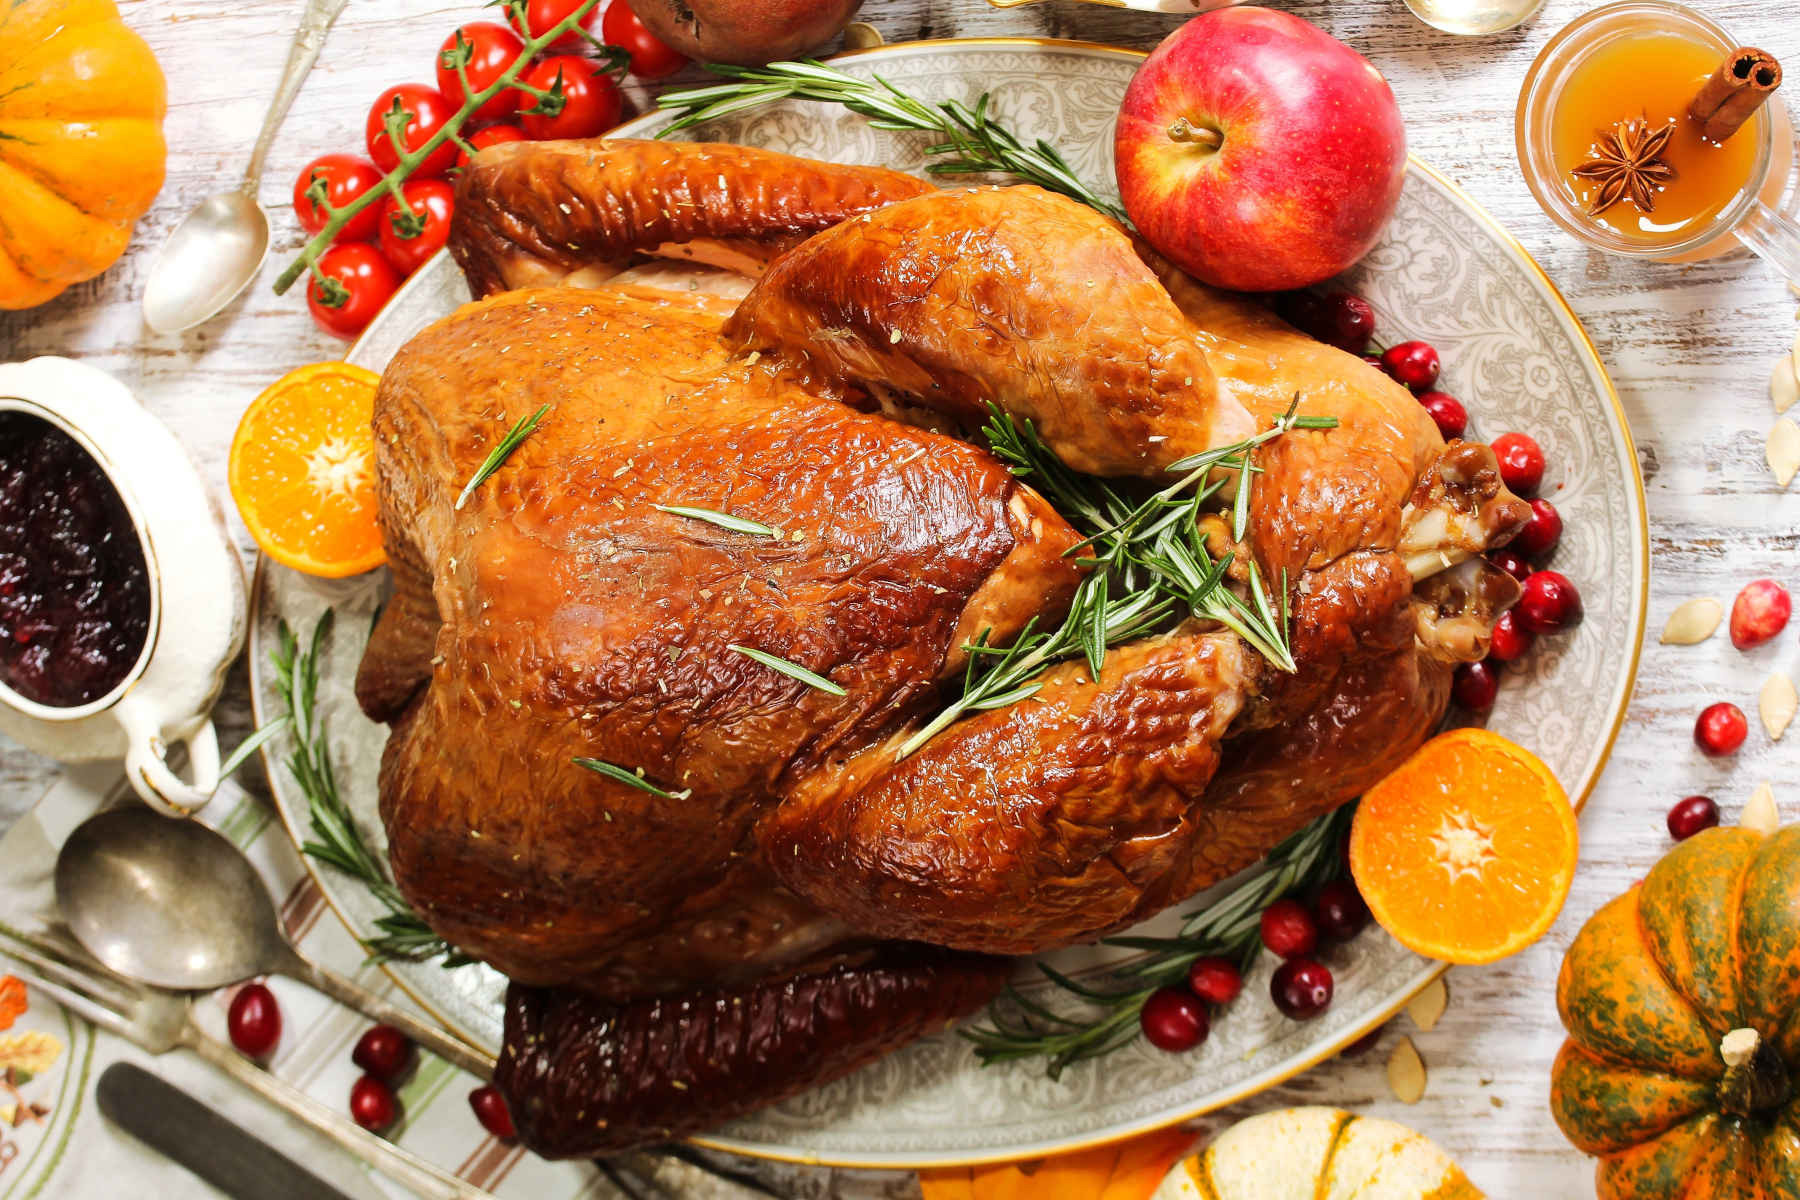 Customer Survey + Pre-order Your Thanksgiving Turkey